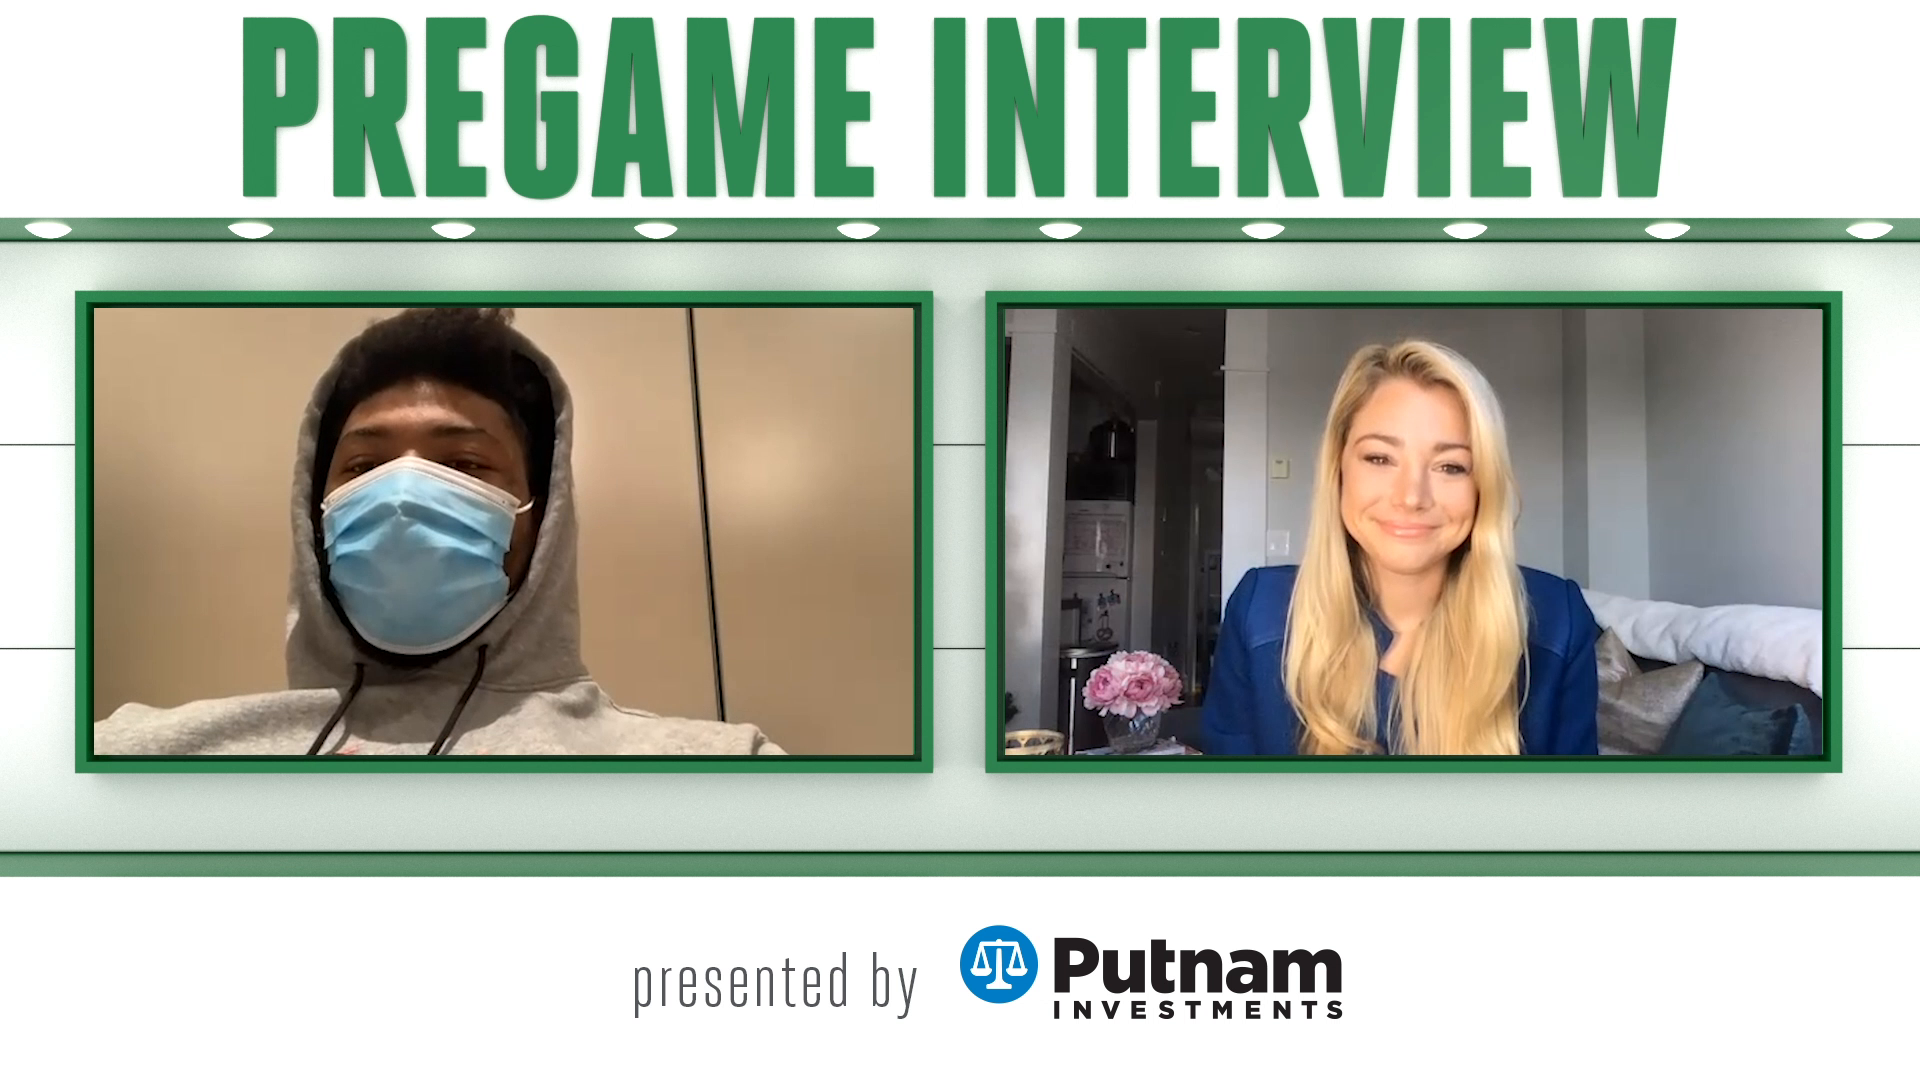 1/22 Putnam Pregame Interview: Compartmentalize